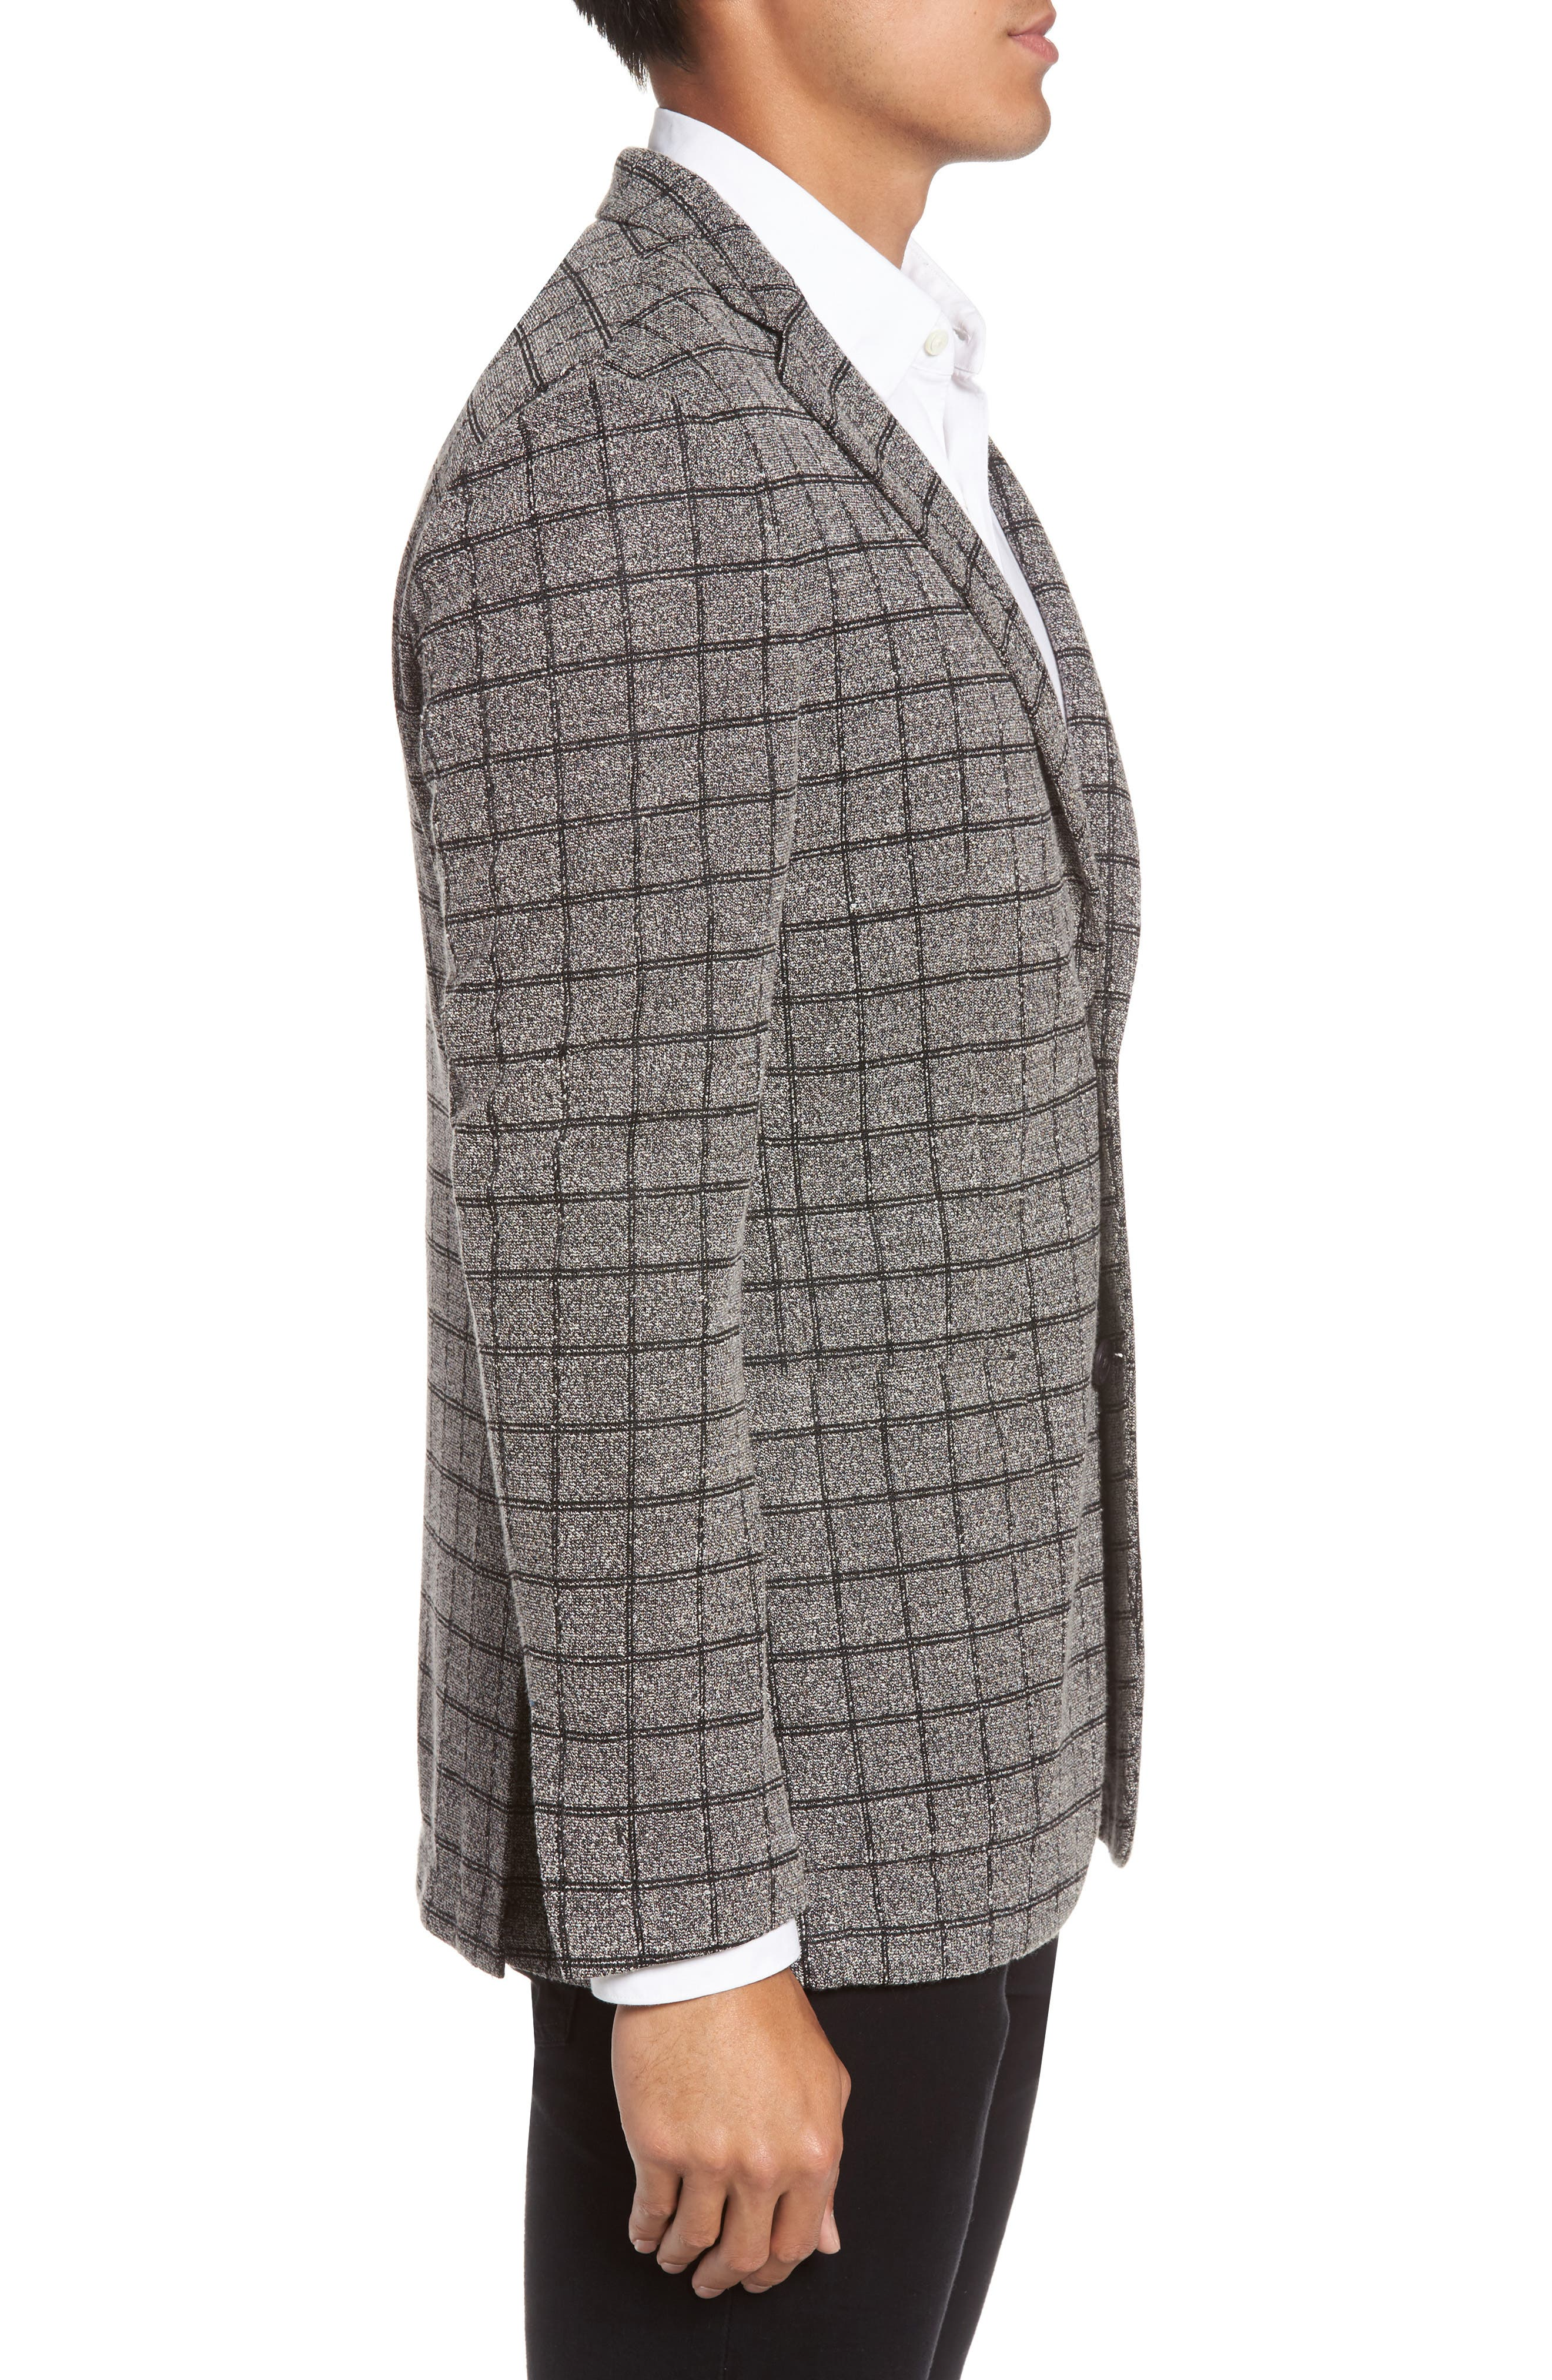 Del Aria Slim Fit Check Knit Jacket,                             Alternate thumbnail 3, color,                             Charcoal Windowpane Boucle